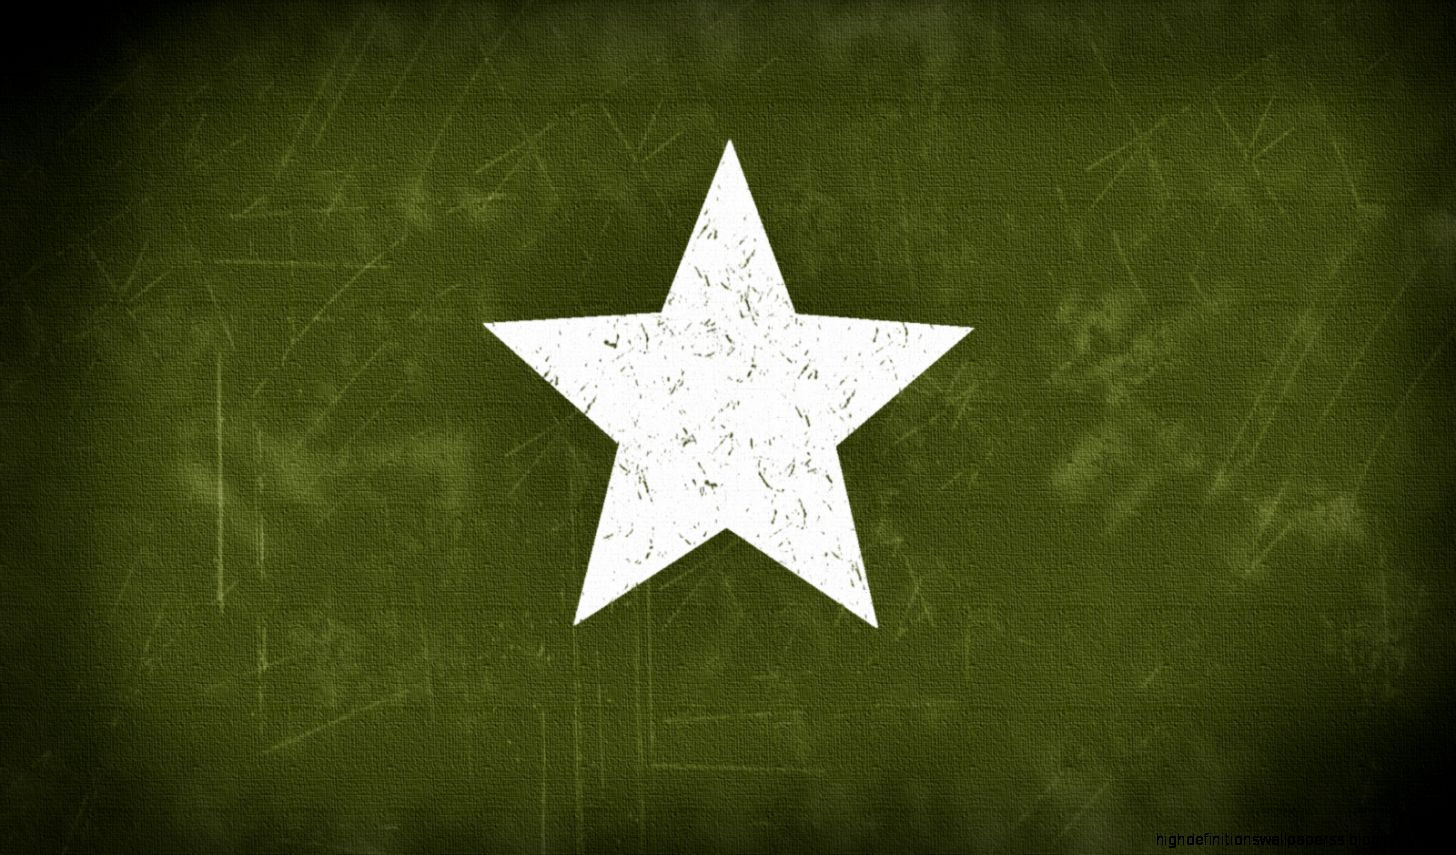 Us Army Star Hd Wallpaper | High Definitions Wallpapers